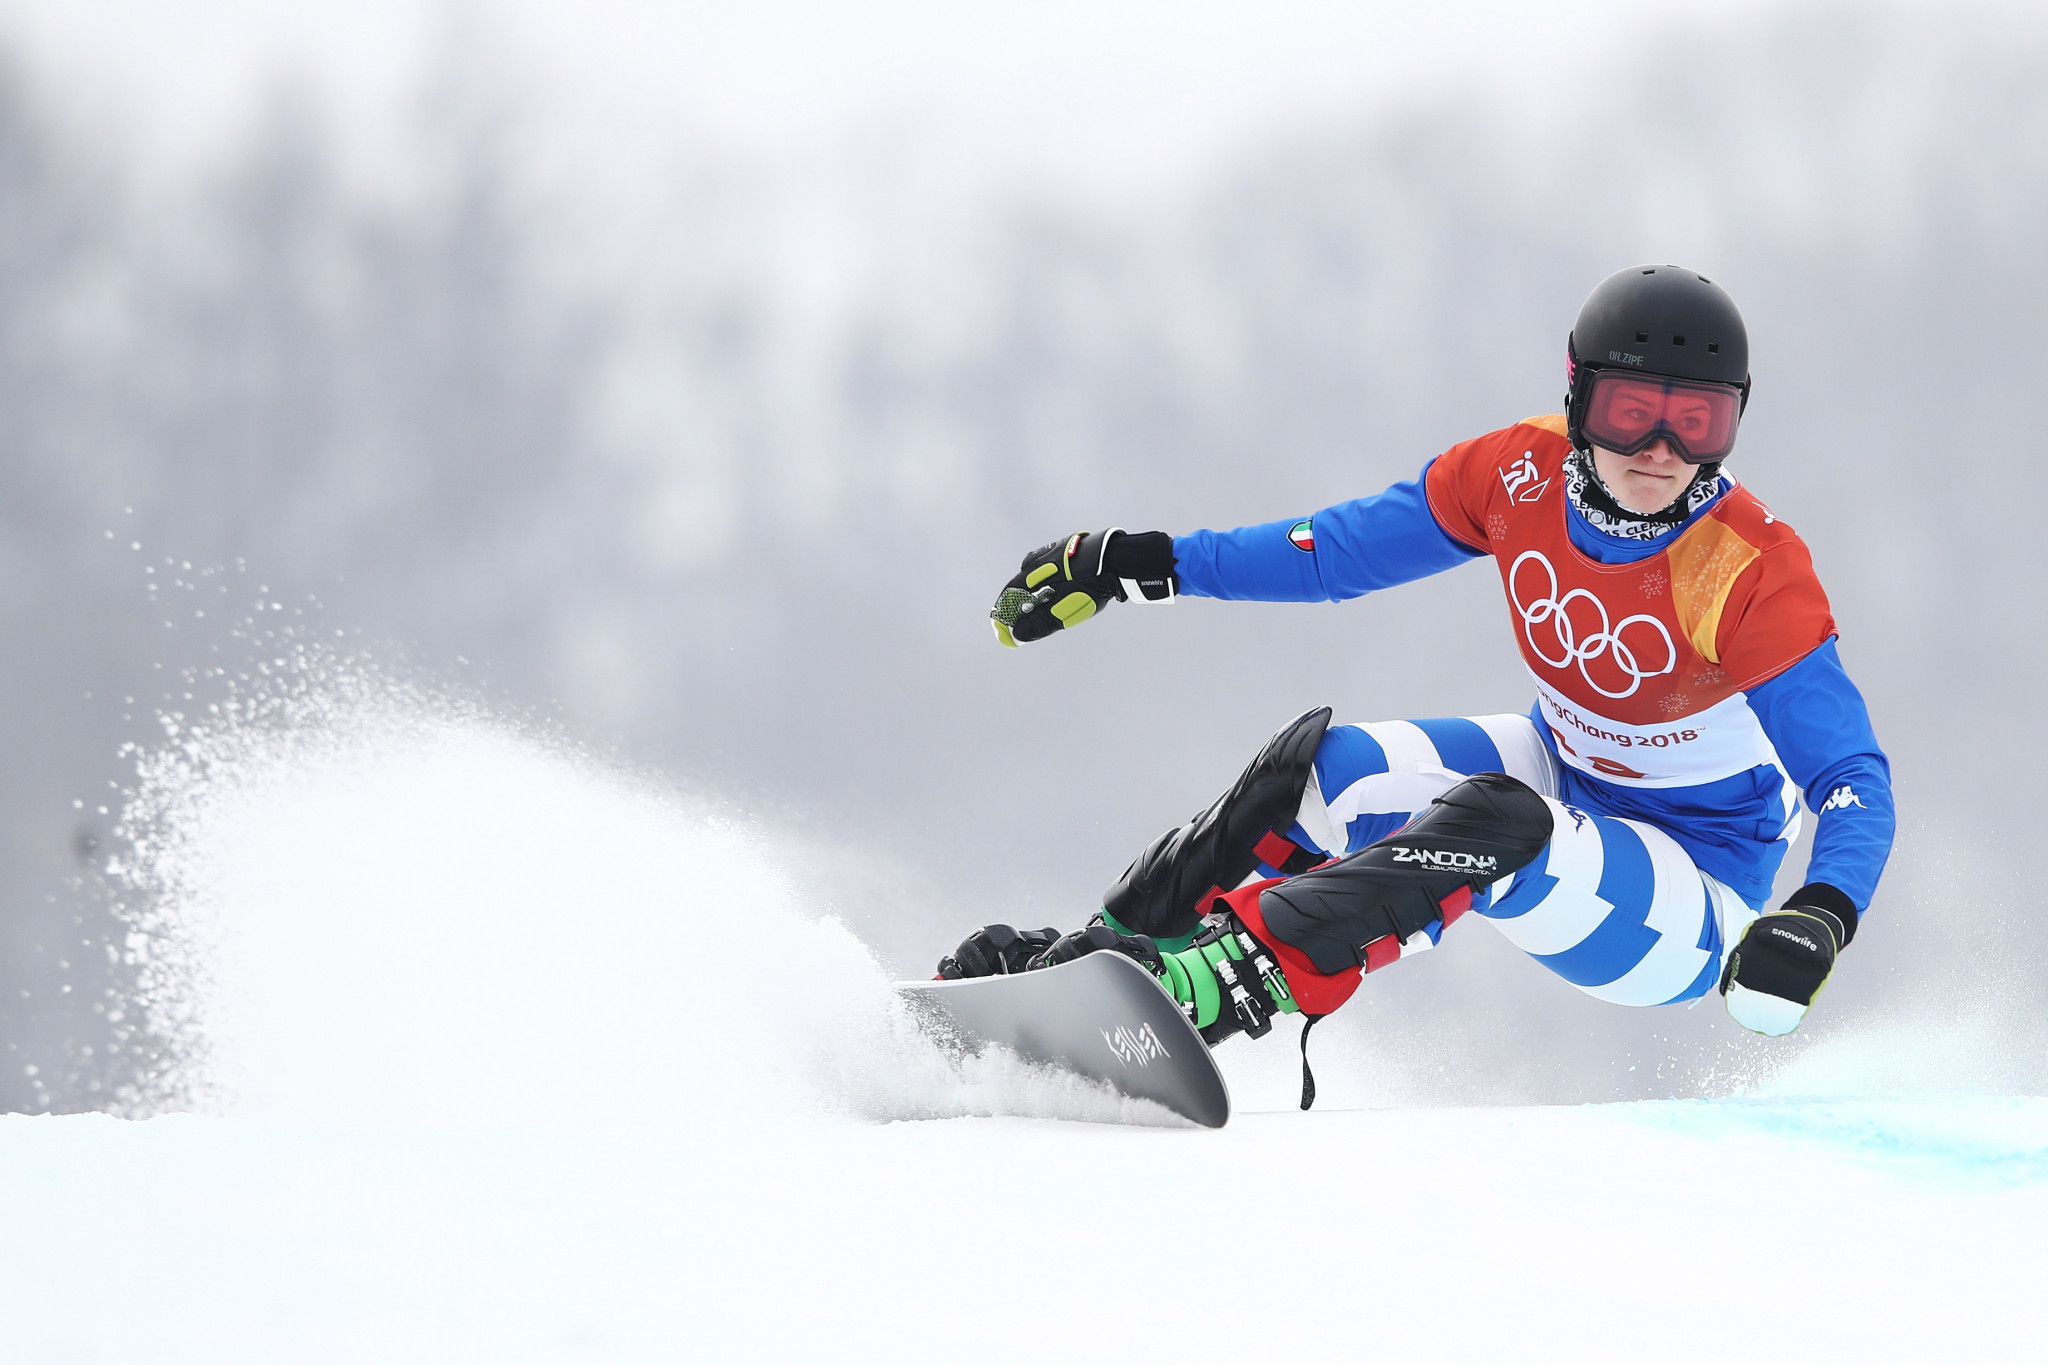 FIS Alpine Snowboard World Cup season set to start in Bannoye